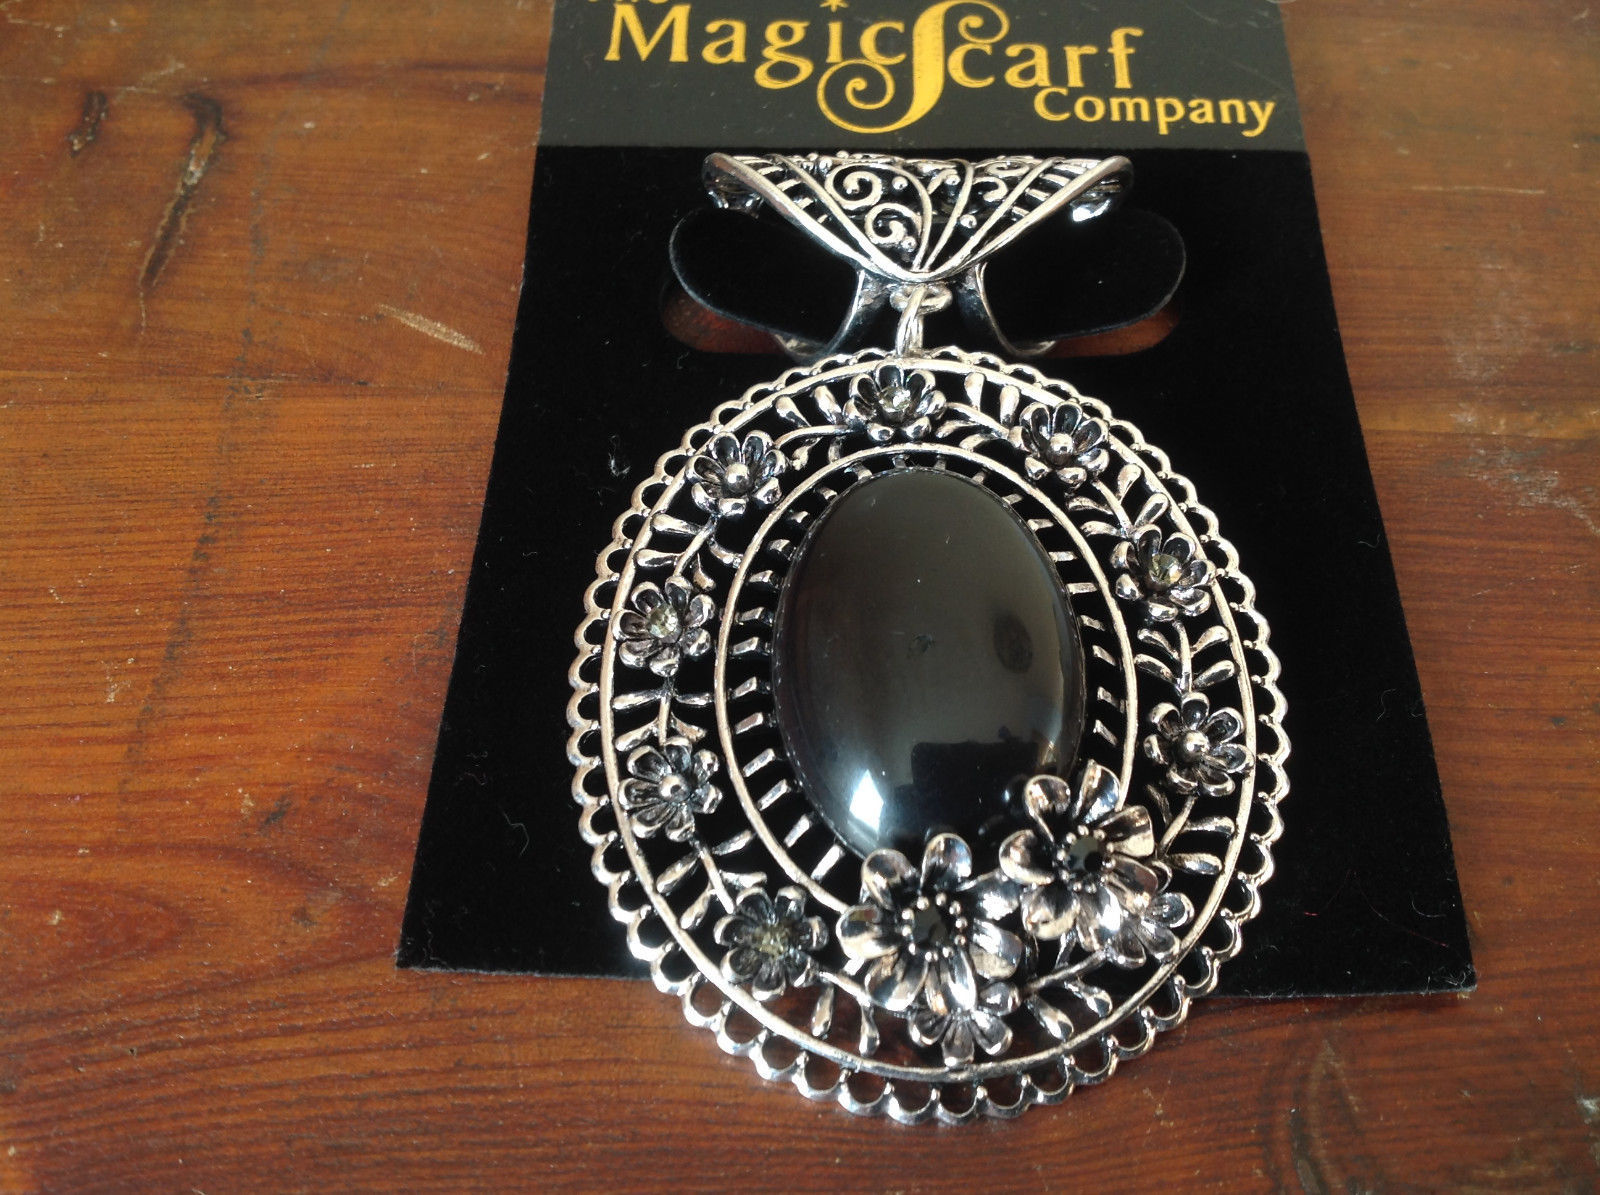 Silver Tone Scarf Pendant with Large Black Oval Stone and Crystals Beads Flowers